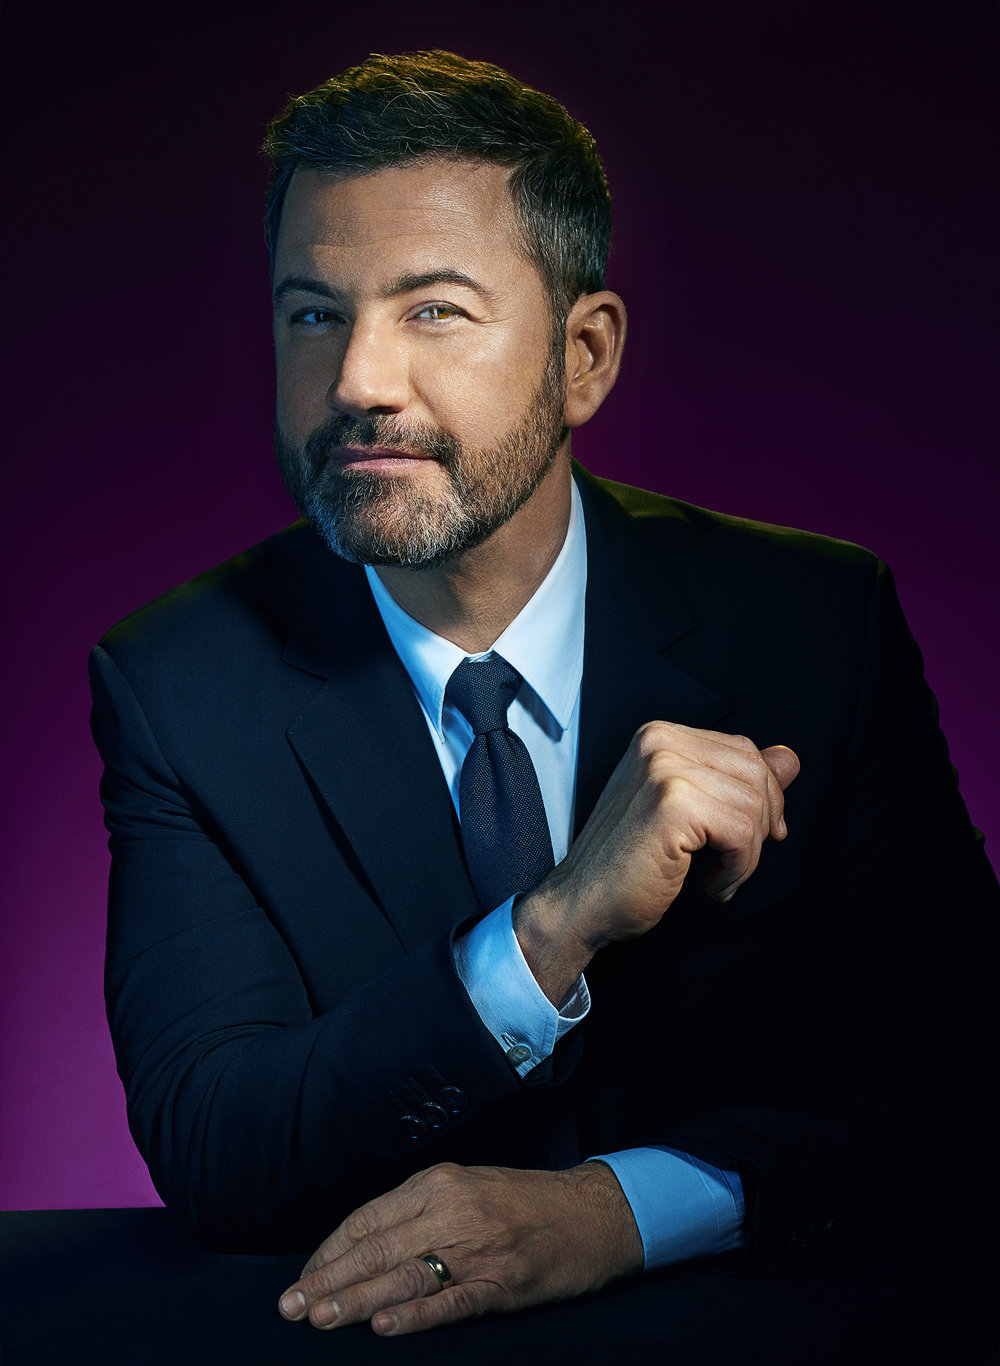 Jimmy+Kimmel_Portrait_Port_Crop.jpg